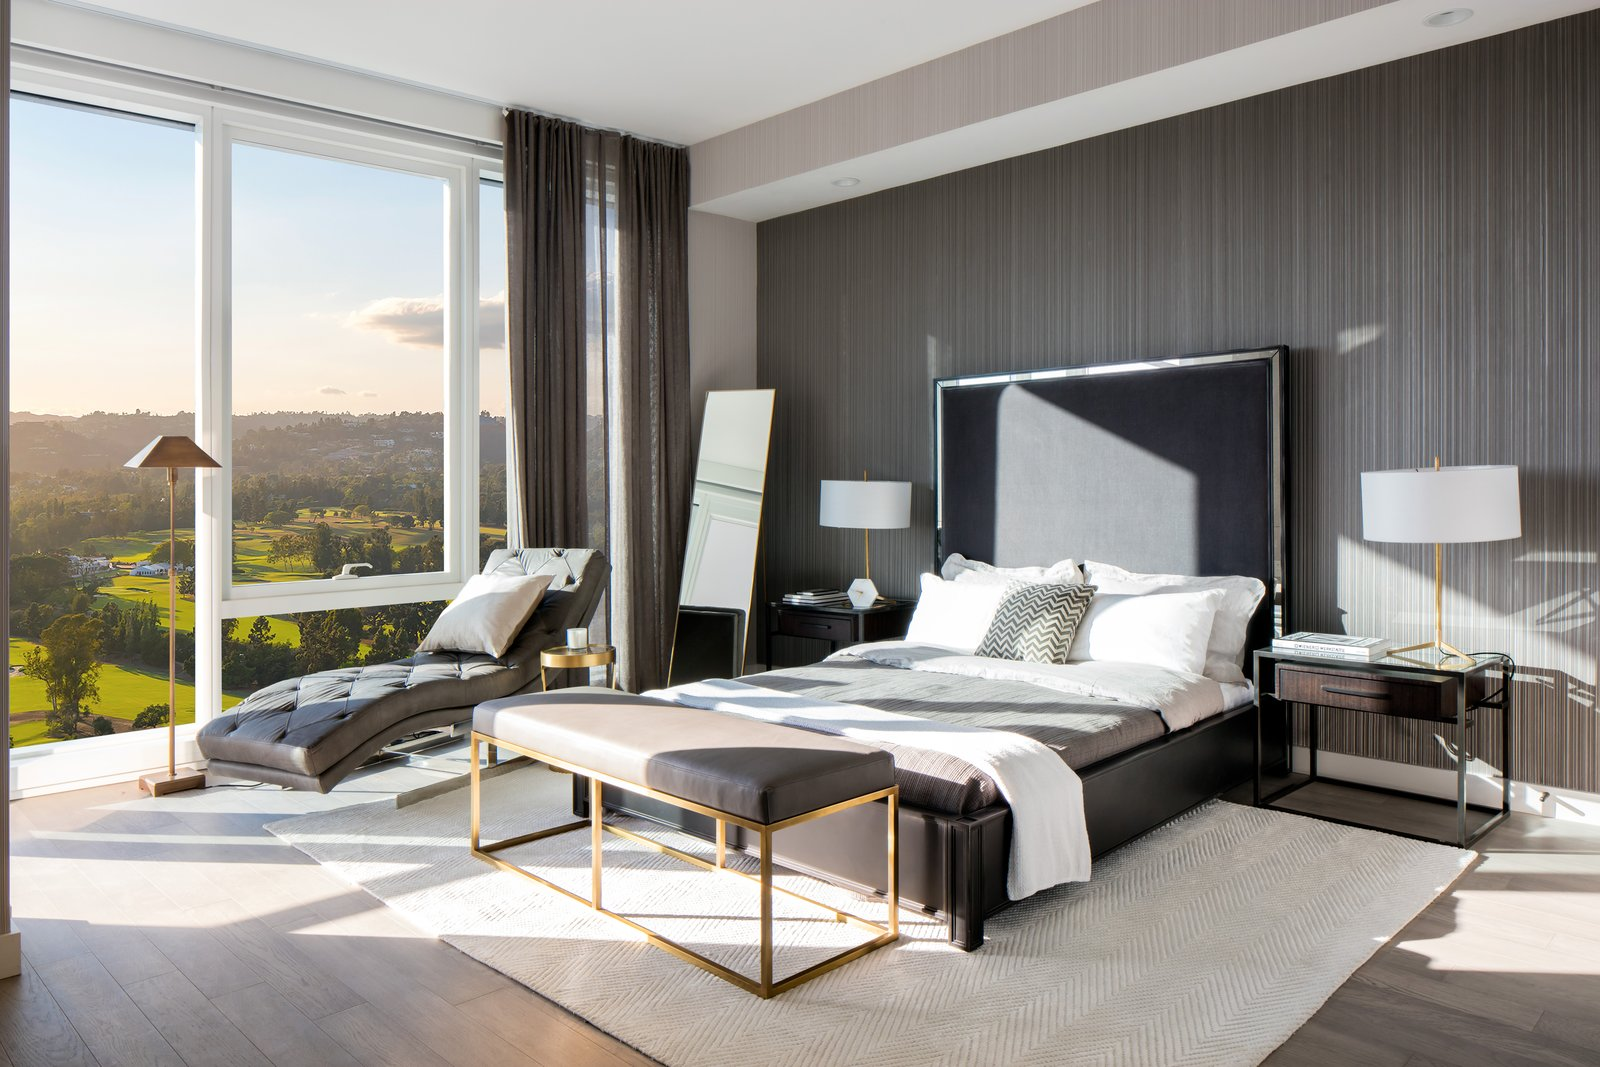 Ten Thousand Unveils First Look at Life Inside the Elegant Los Angeles Tower